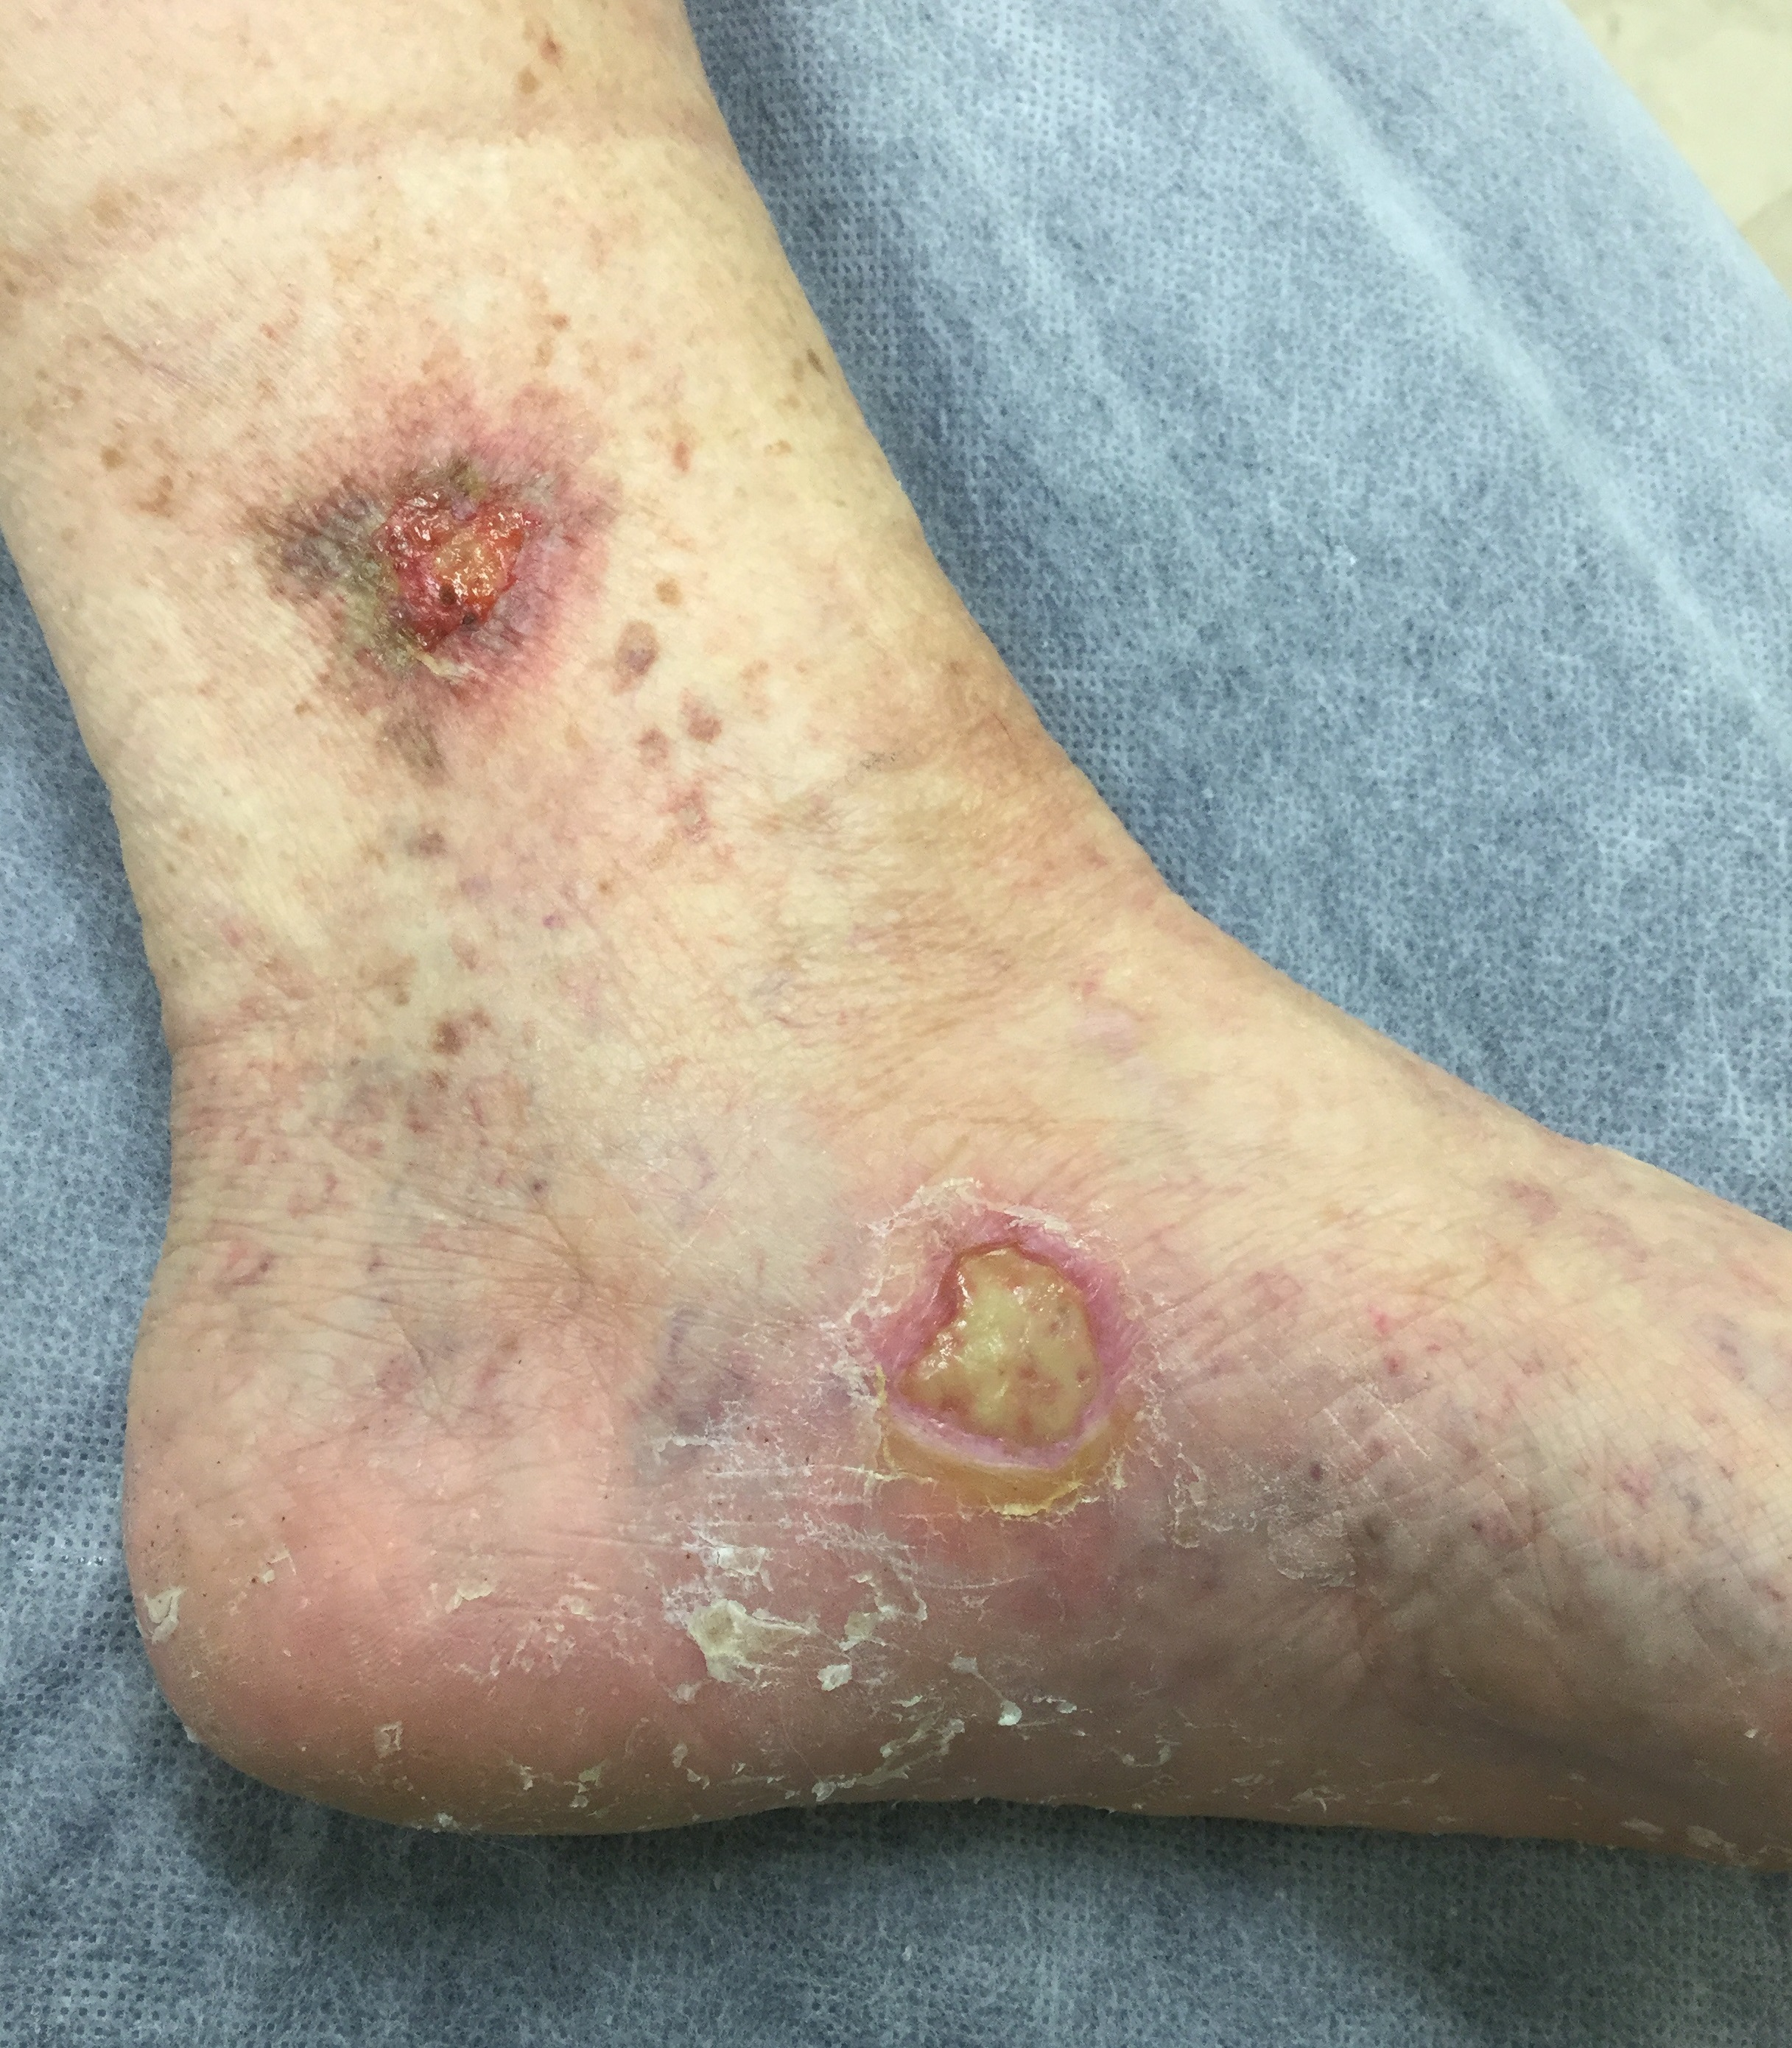 Venous Ulcer on a female patient with untreated Varicose Veins.